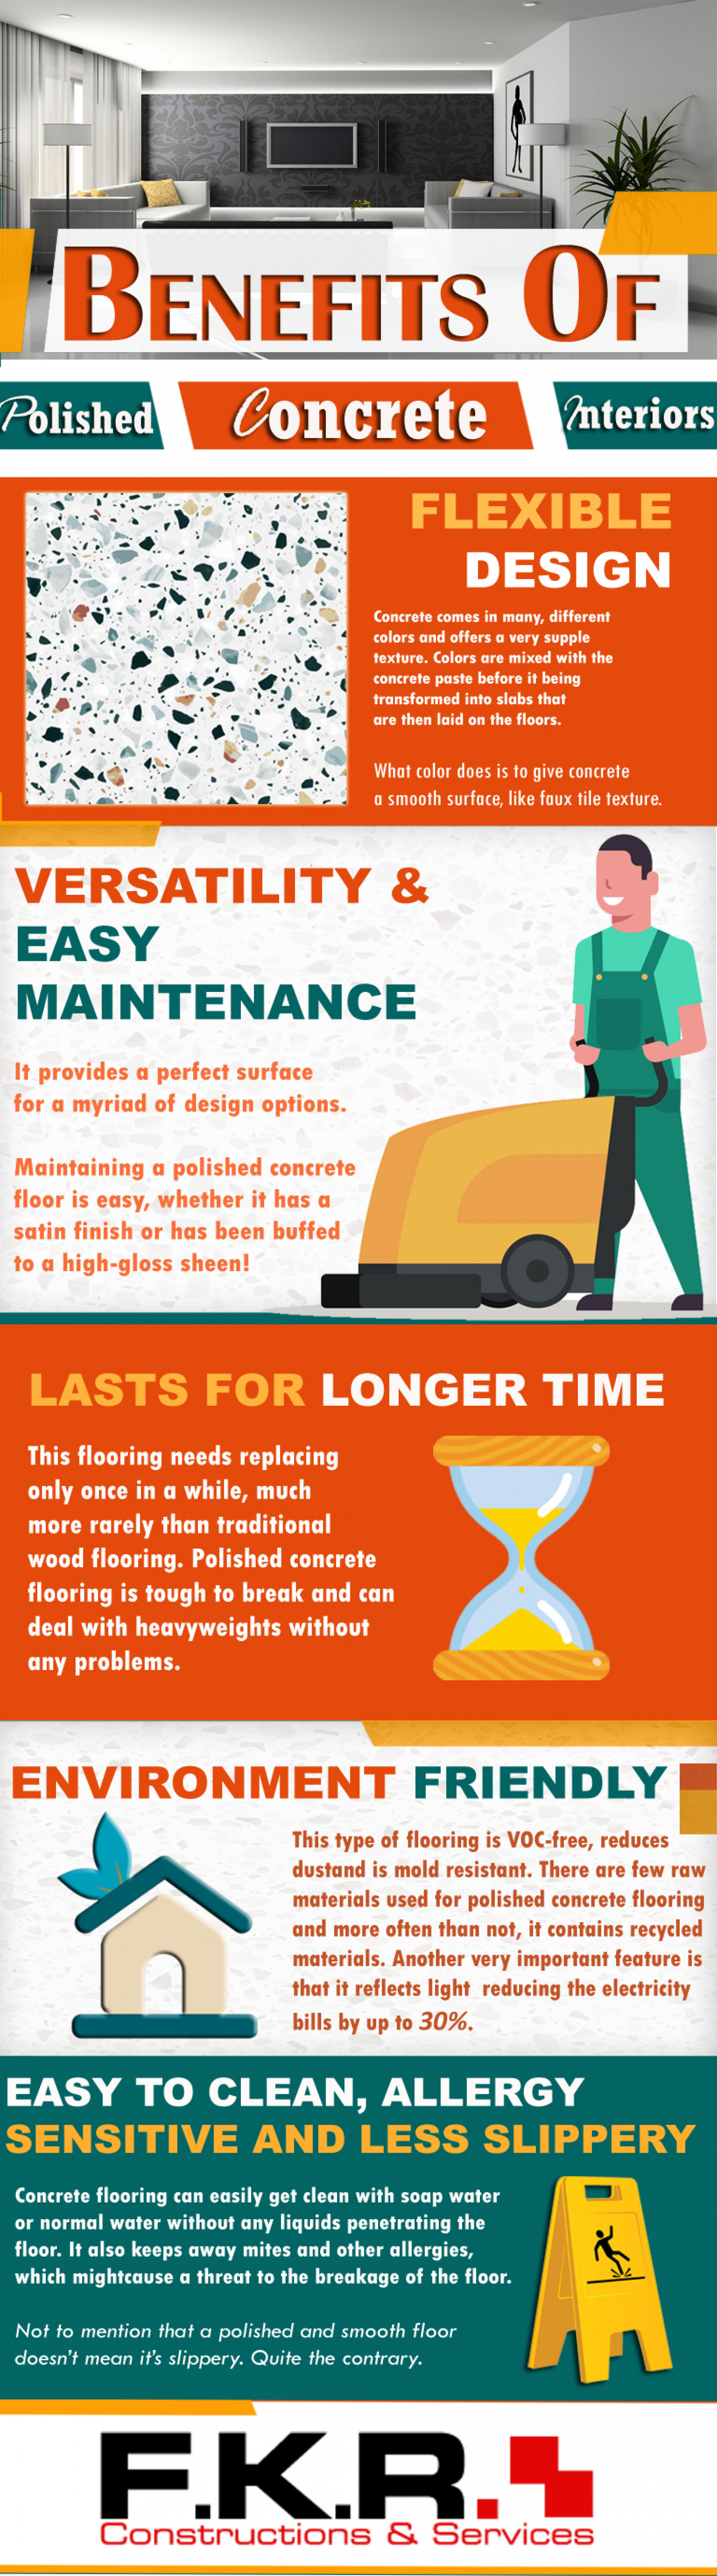 Benefits of Polished Concrete Interiors Infographic